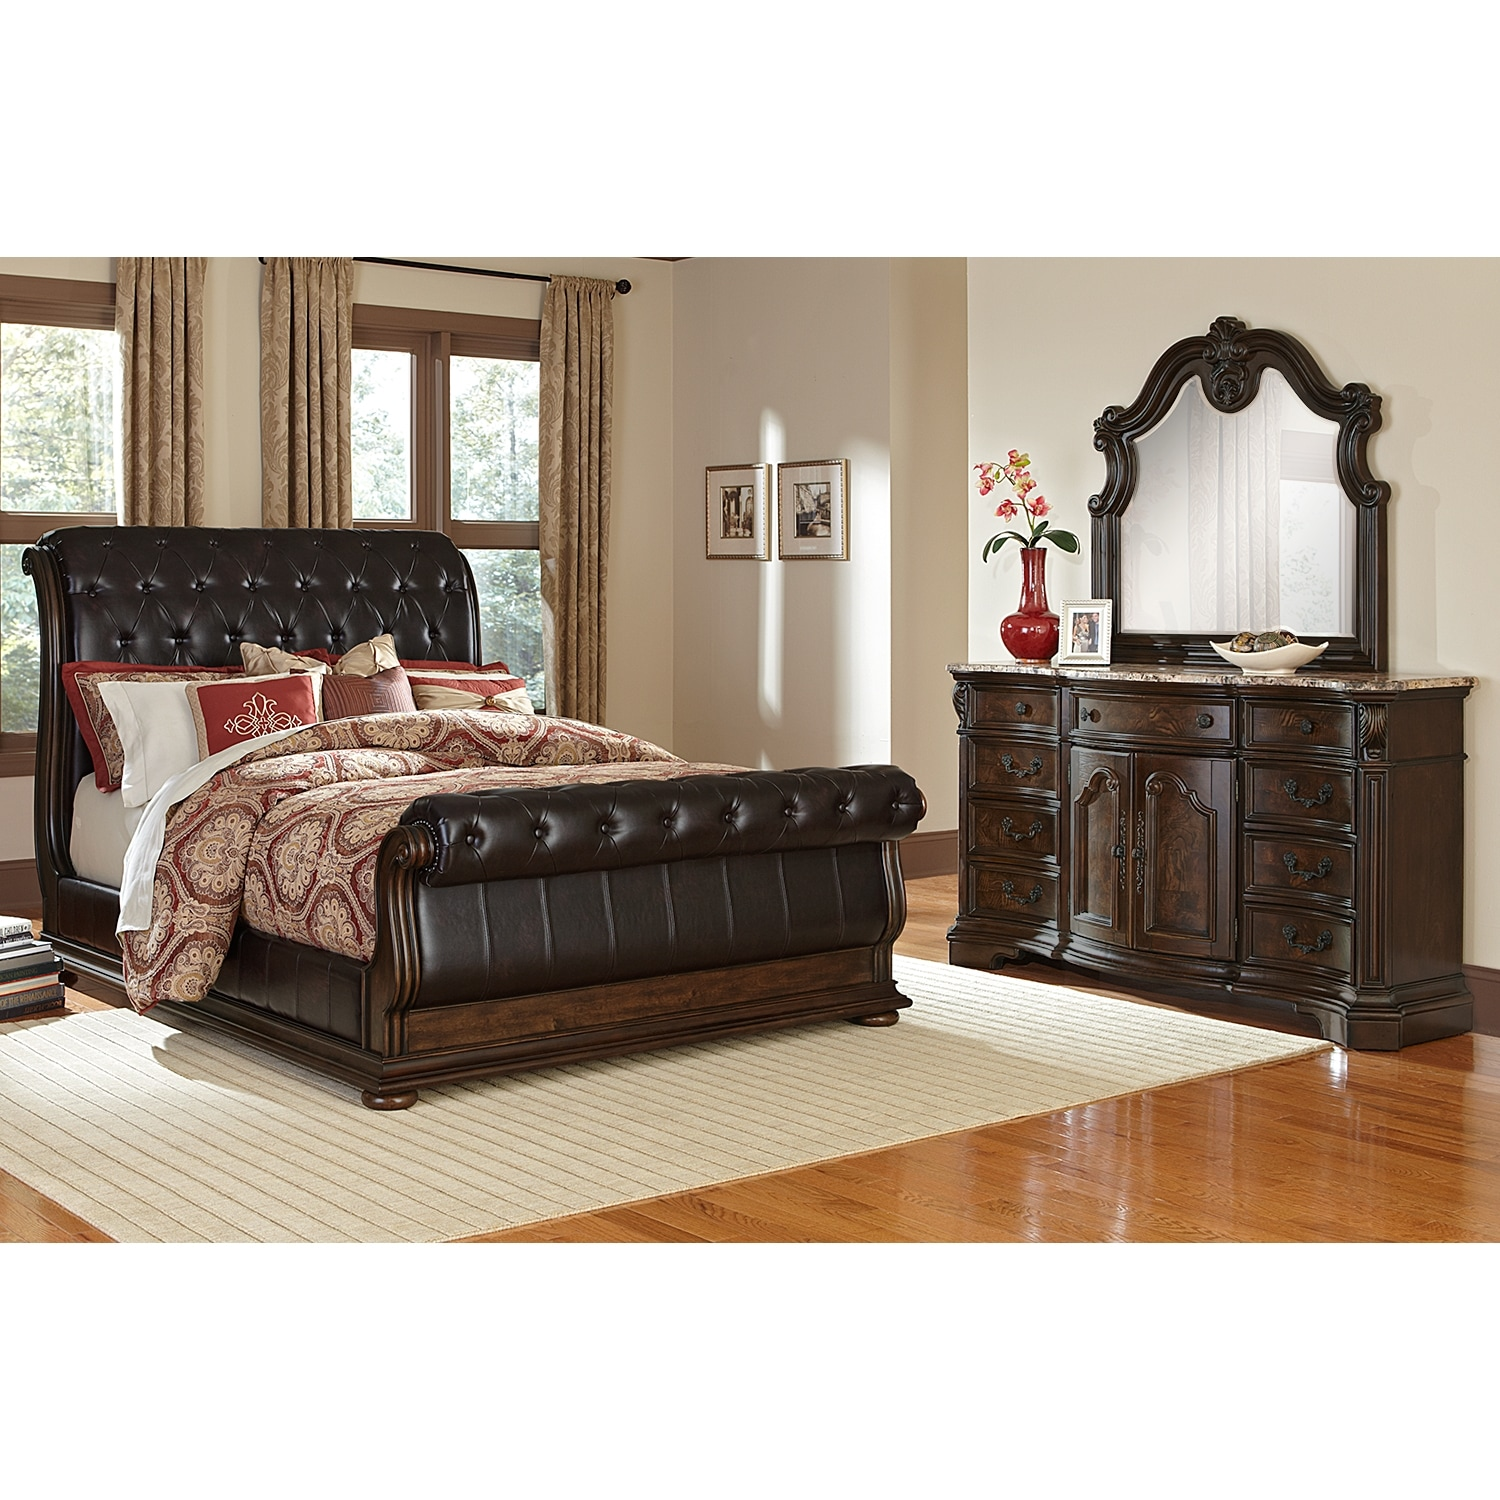 Superbe Monticello 5 Piece Queen Upholstered Sleigh Bedroom Set   Pecan